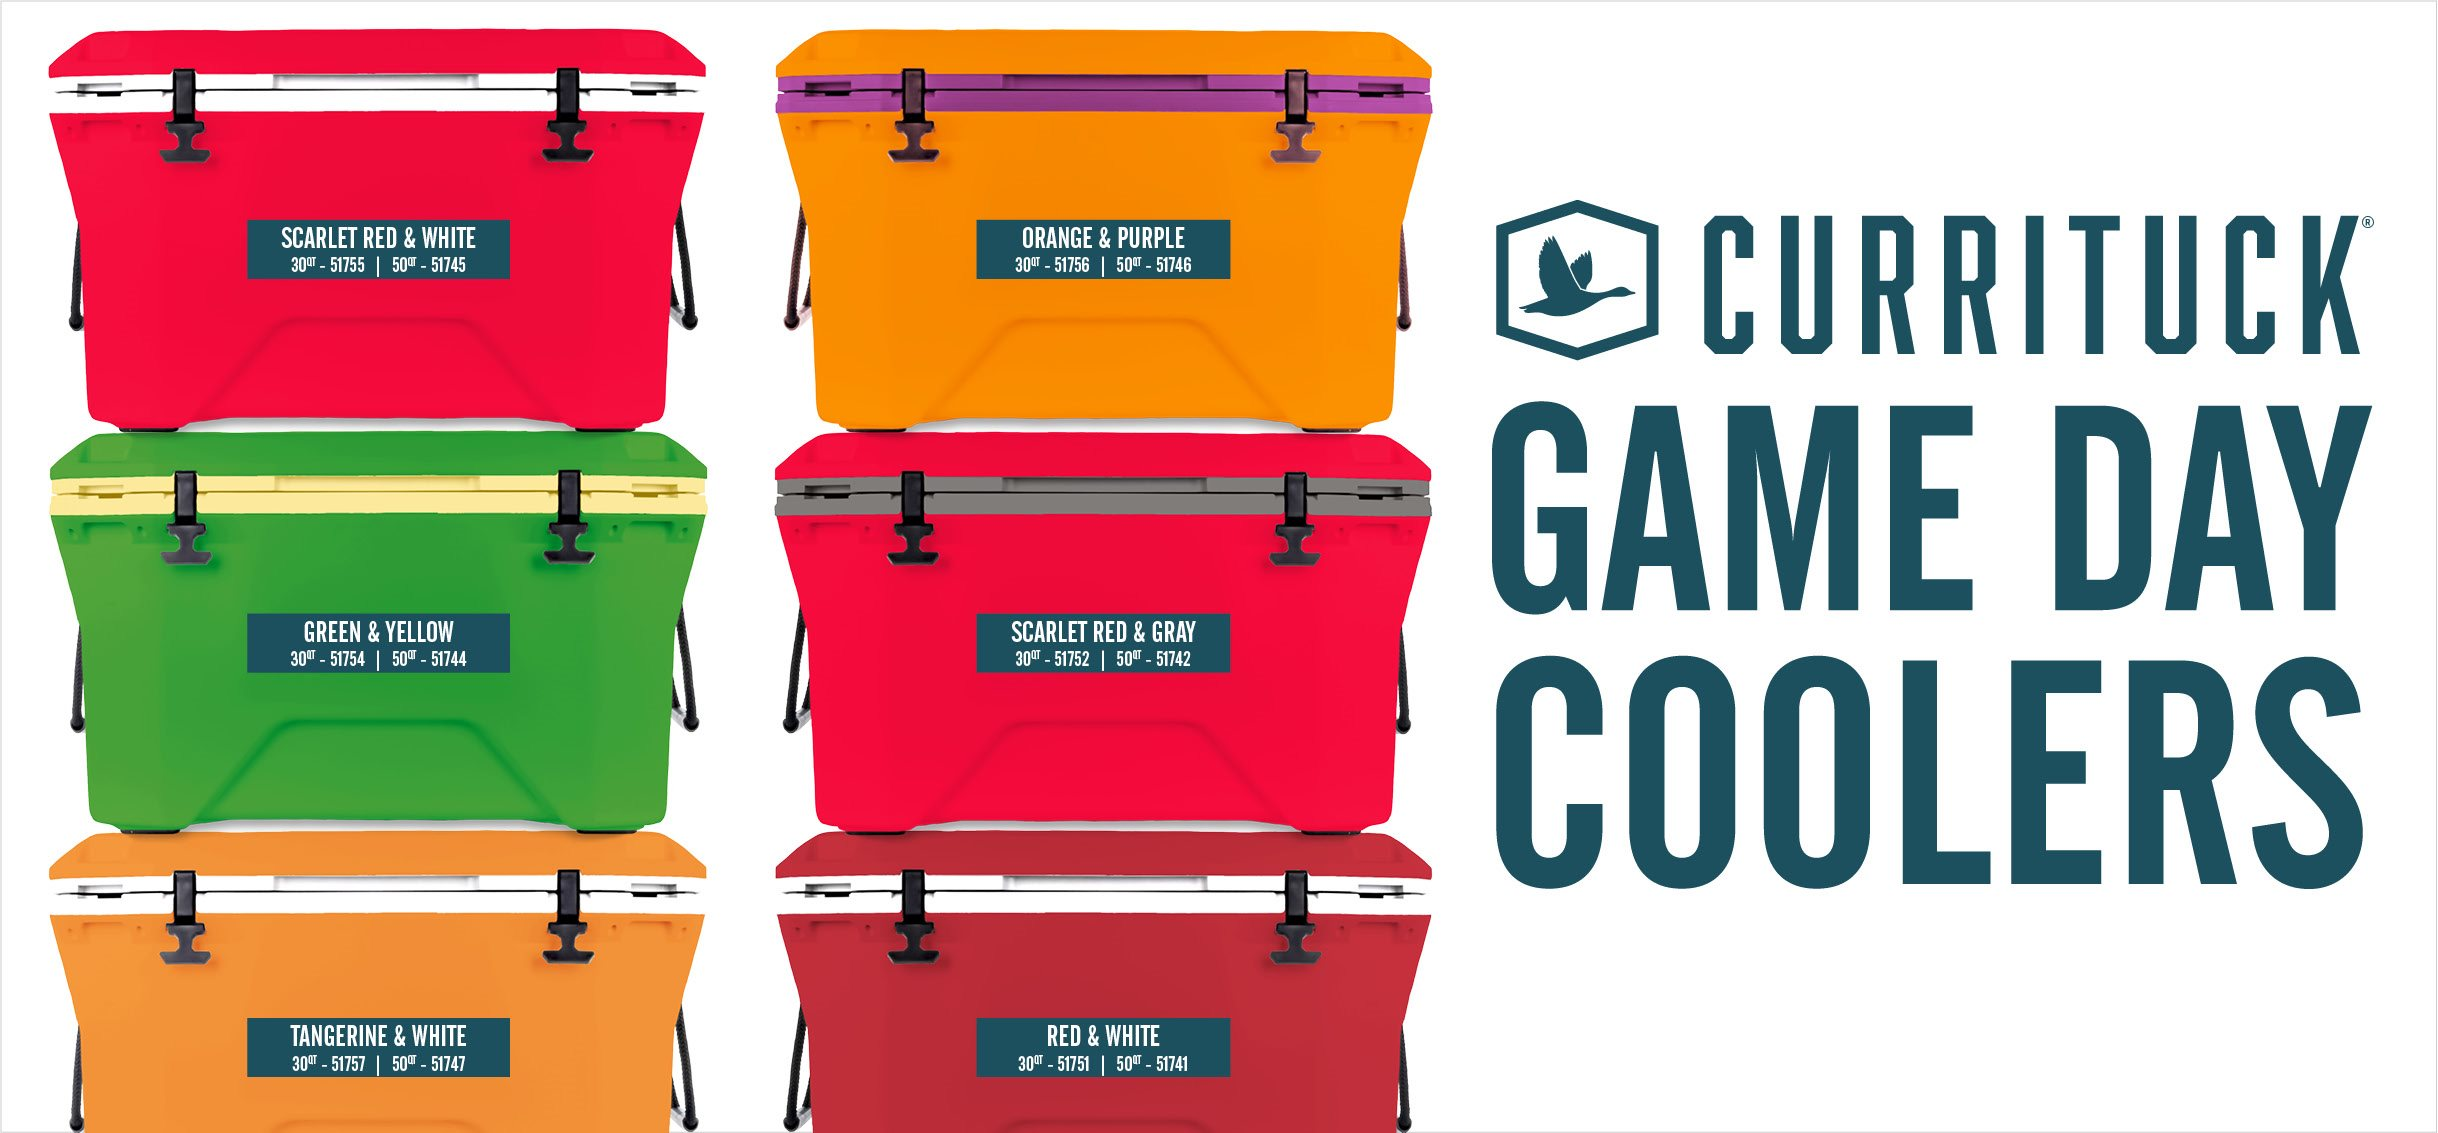 Game day coolers banner